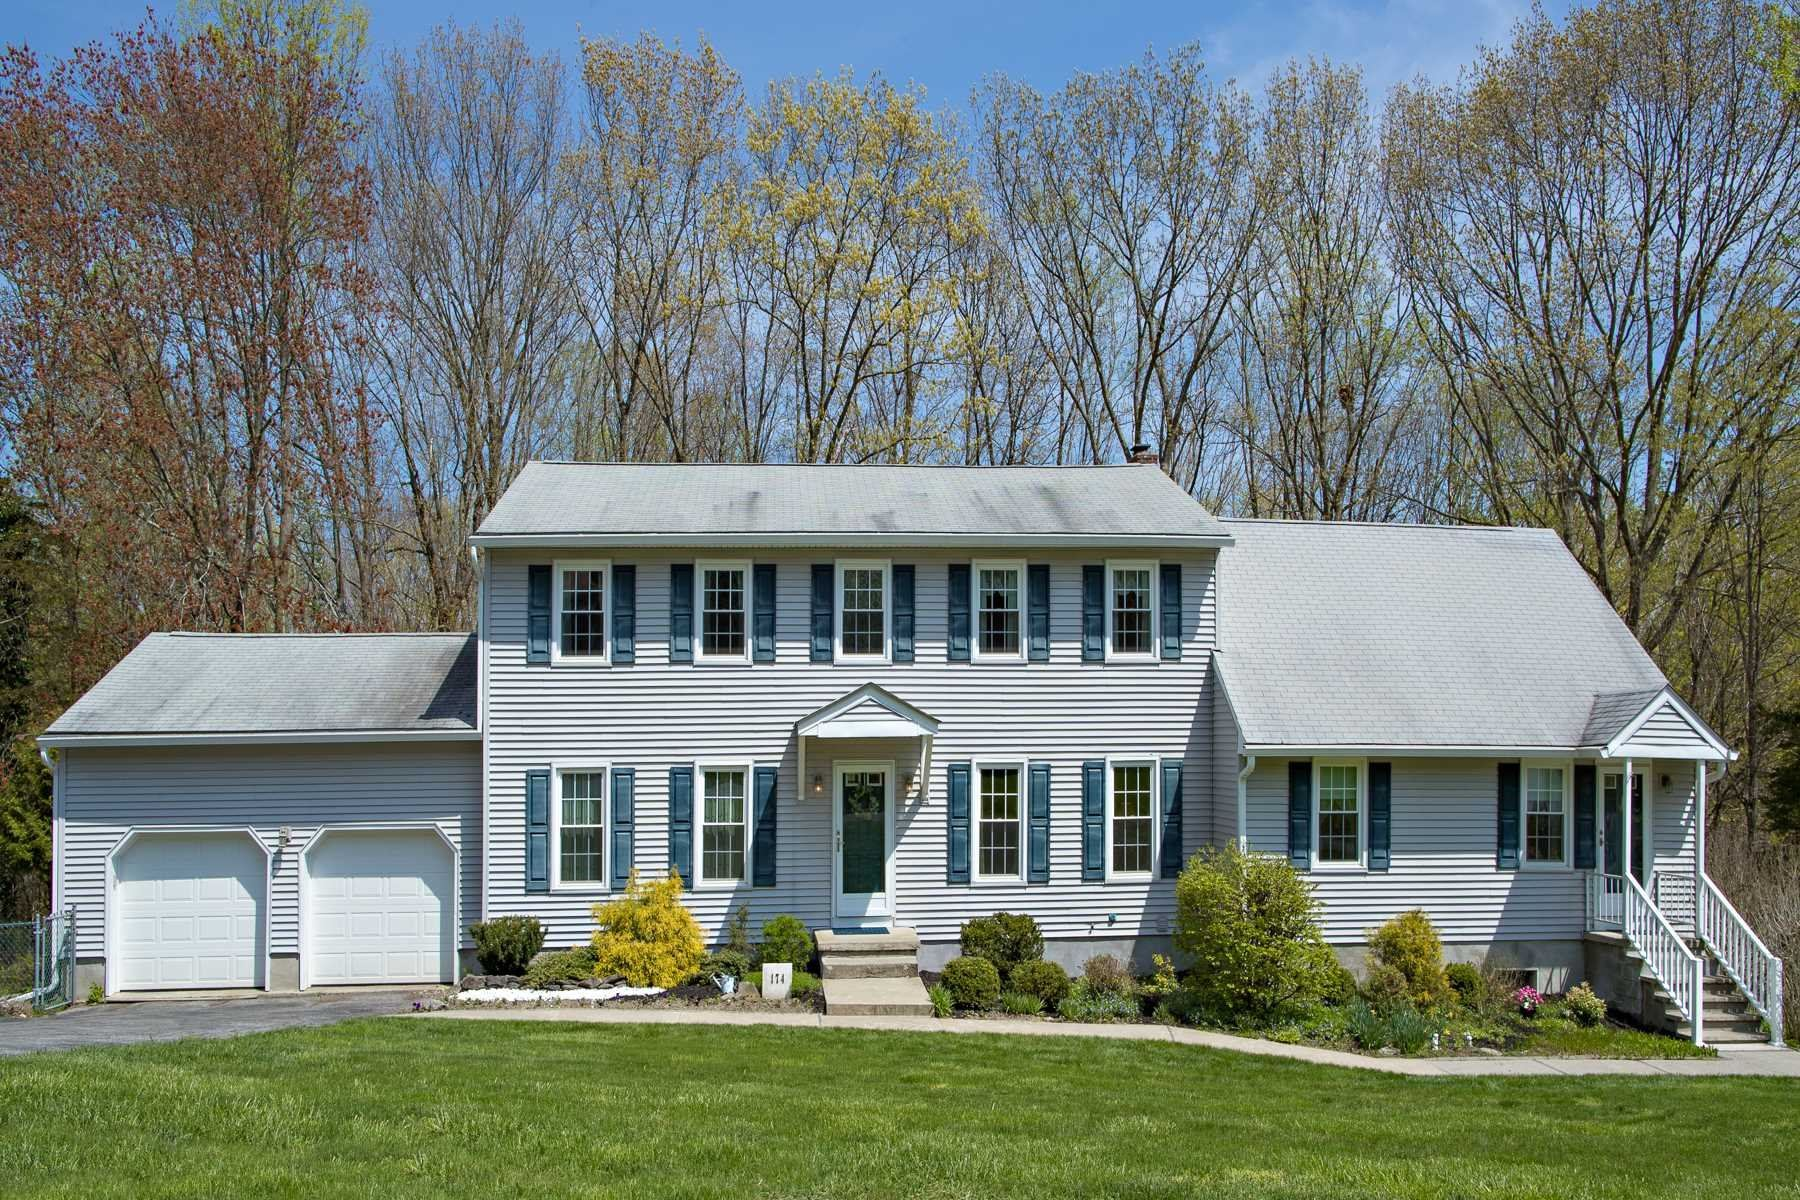 174 FOREST VALLEY RD, Pleasant Valley, NY 12569 - #: 400042